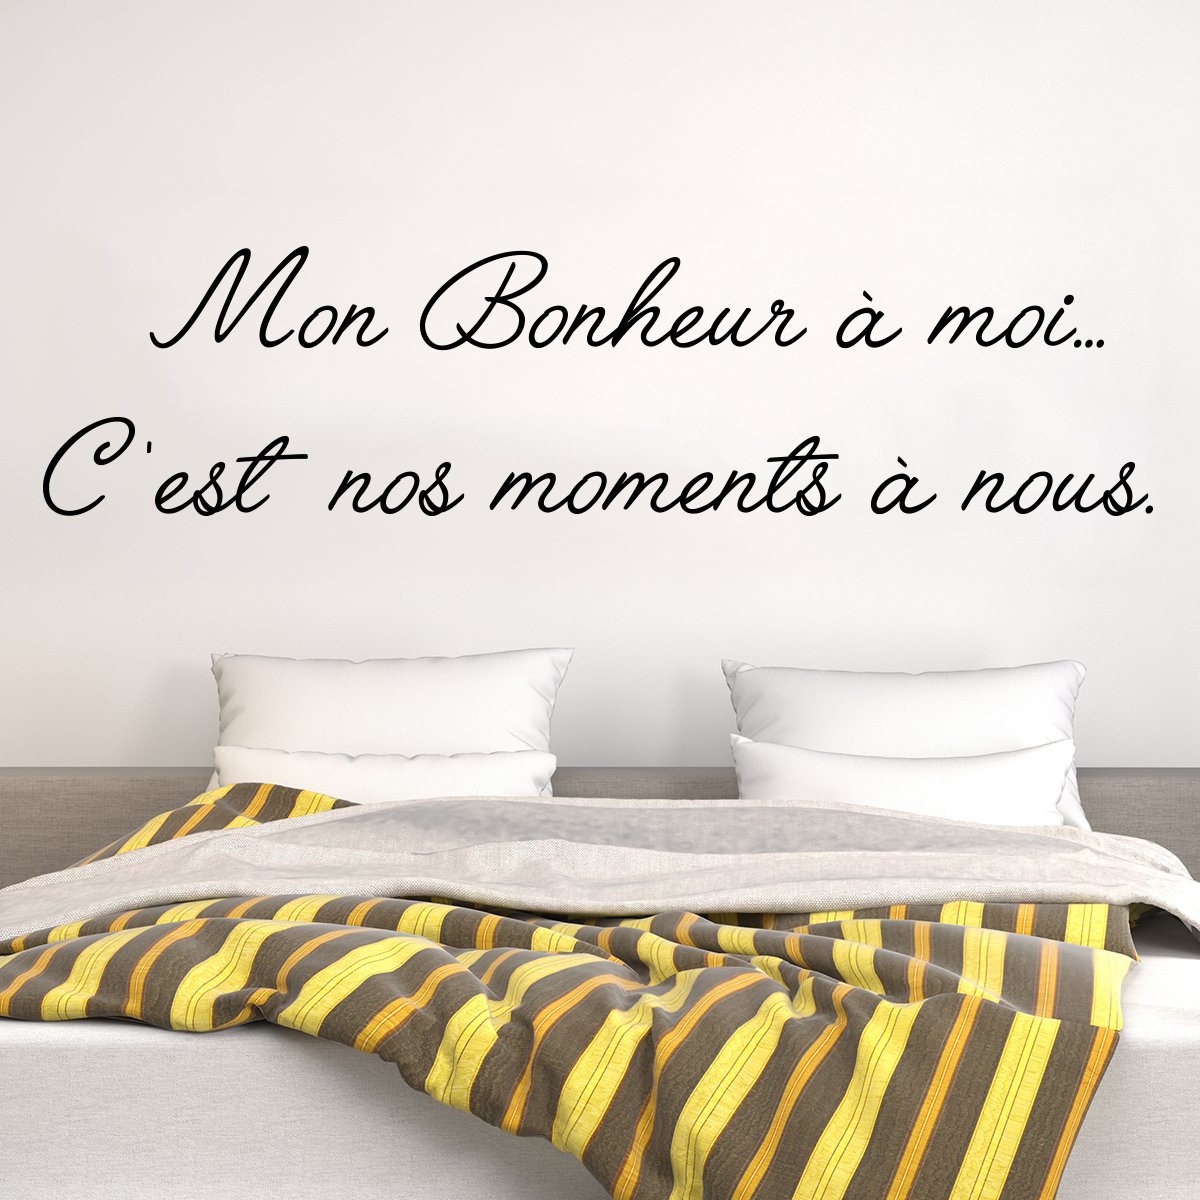 sticker citation mon bonheur moi stickers citations fran ais ambiance sticker. Black Bedroom Furniture Sets. Home Design Ideas